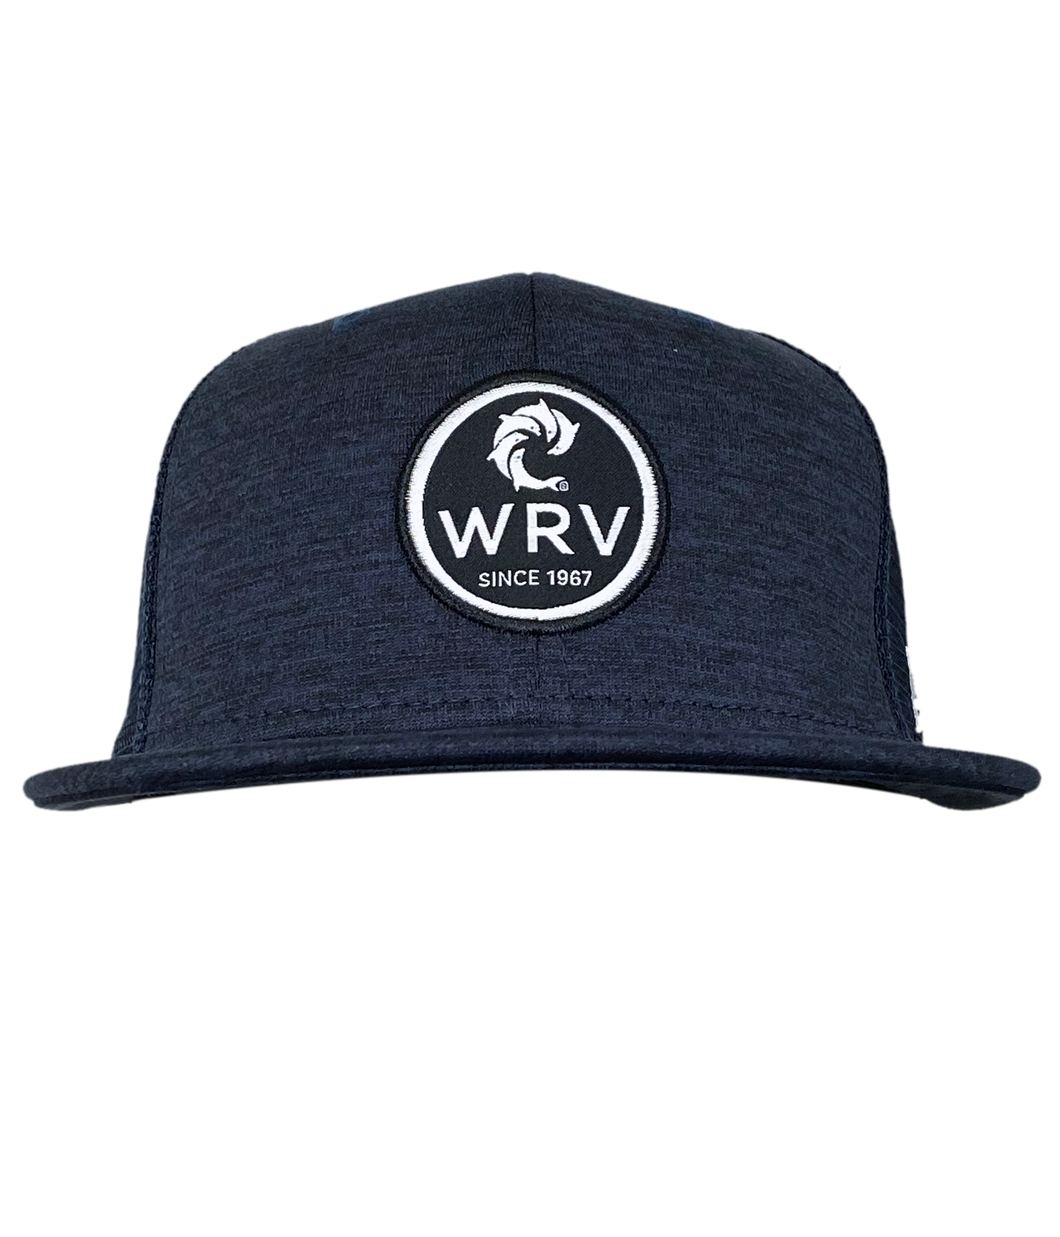 WRV x New Era Trucker Hat